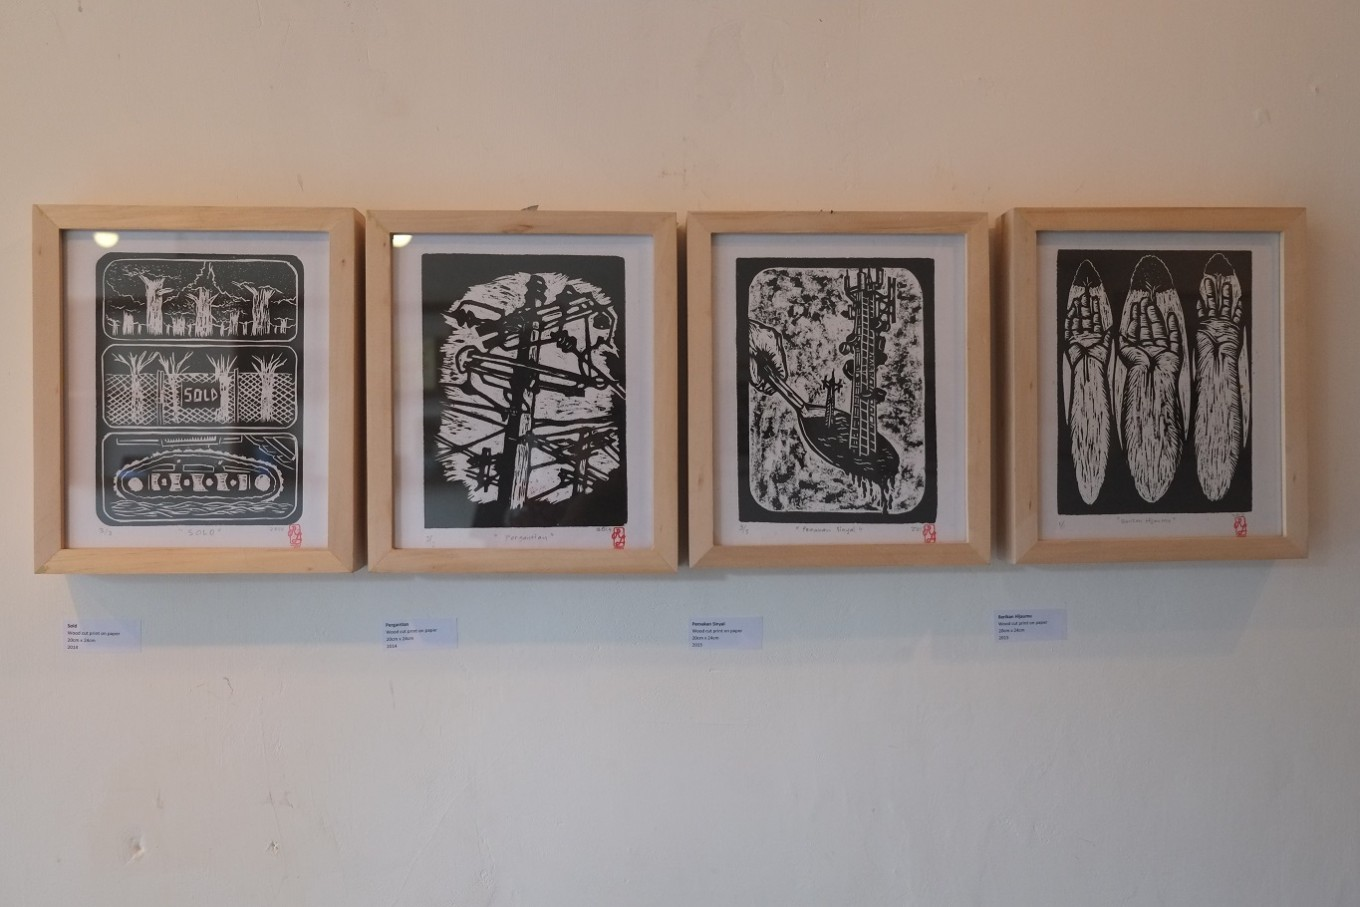 Intersection of art and land struggles in Central Java